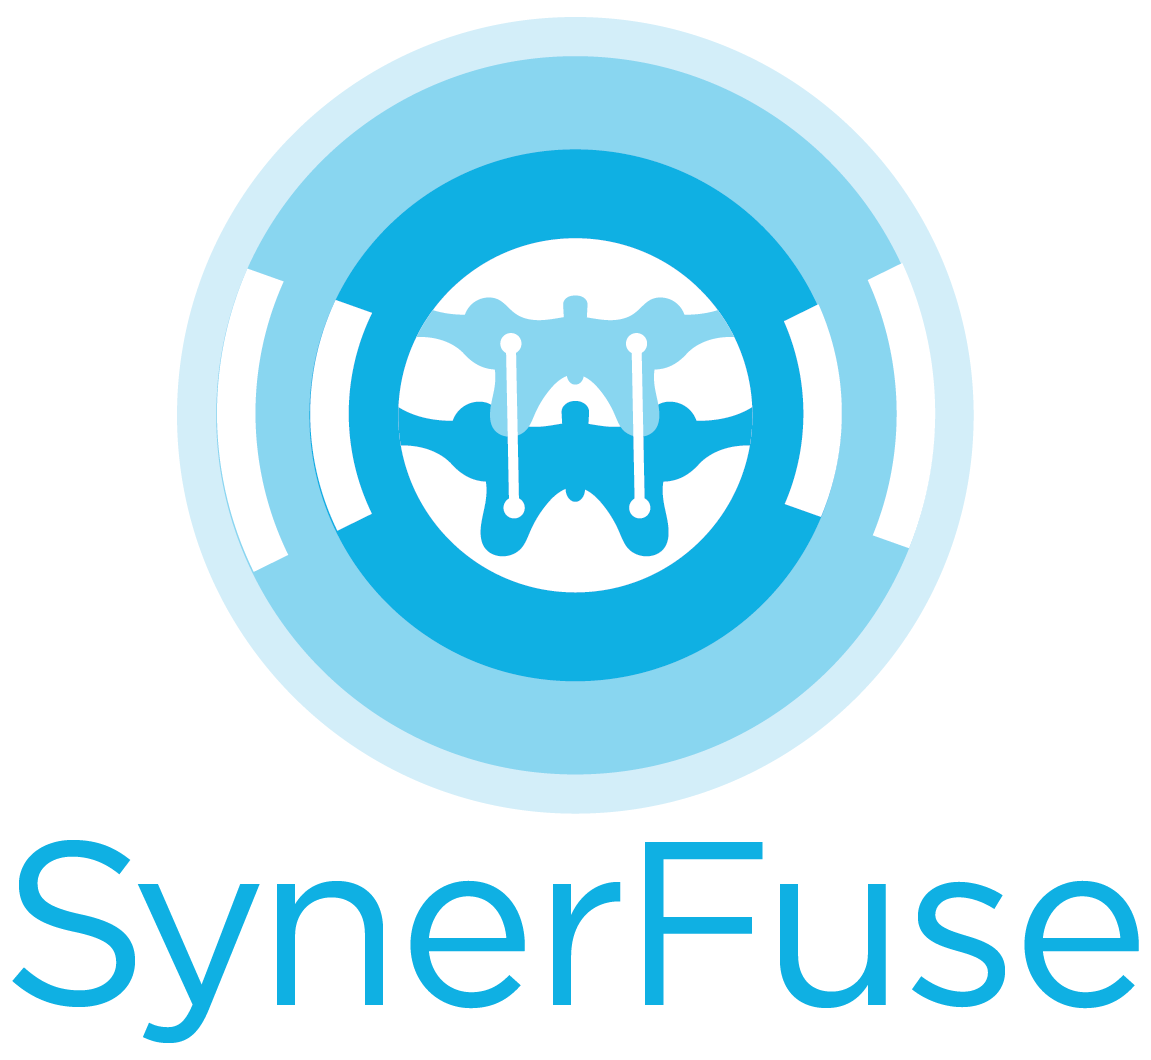 SynerFuse